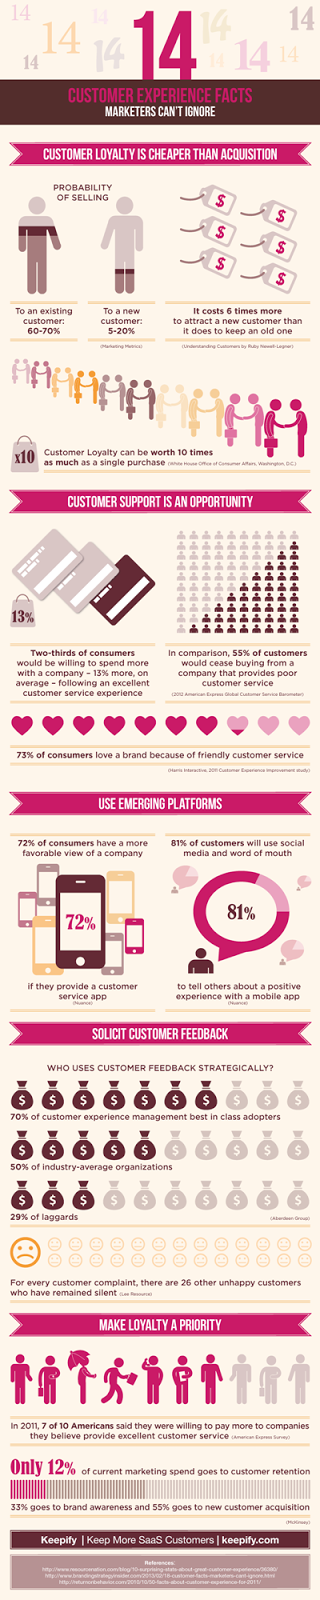 http://businessoverbroadway.com/wp-content/uploads/2013/11/Keepify_CustomerLoyalty_Infographic.pdf